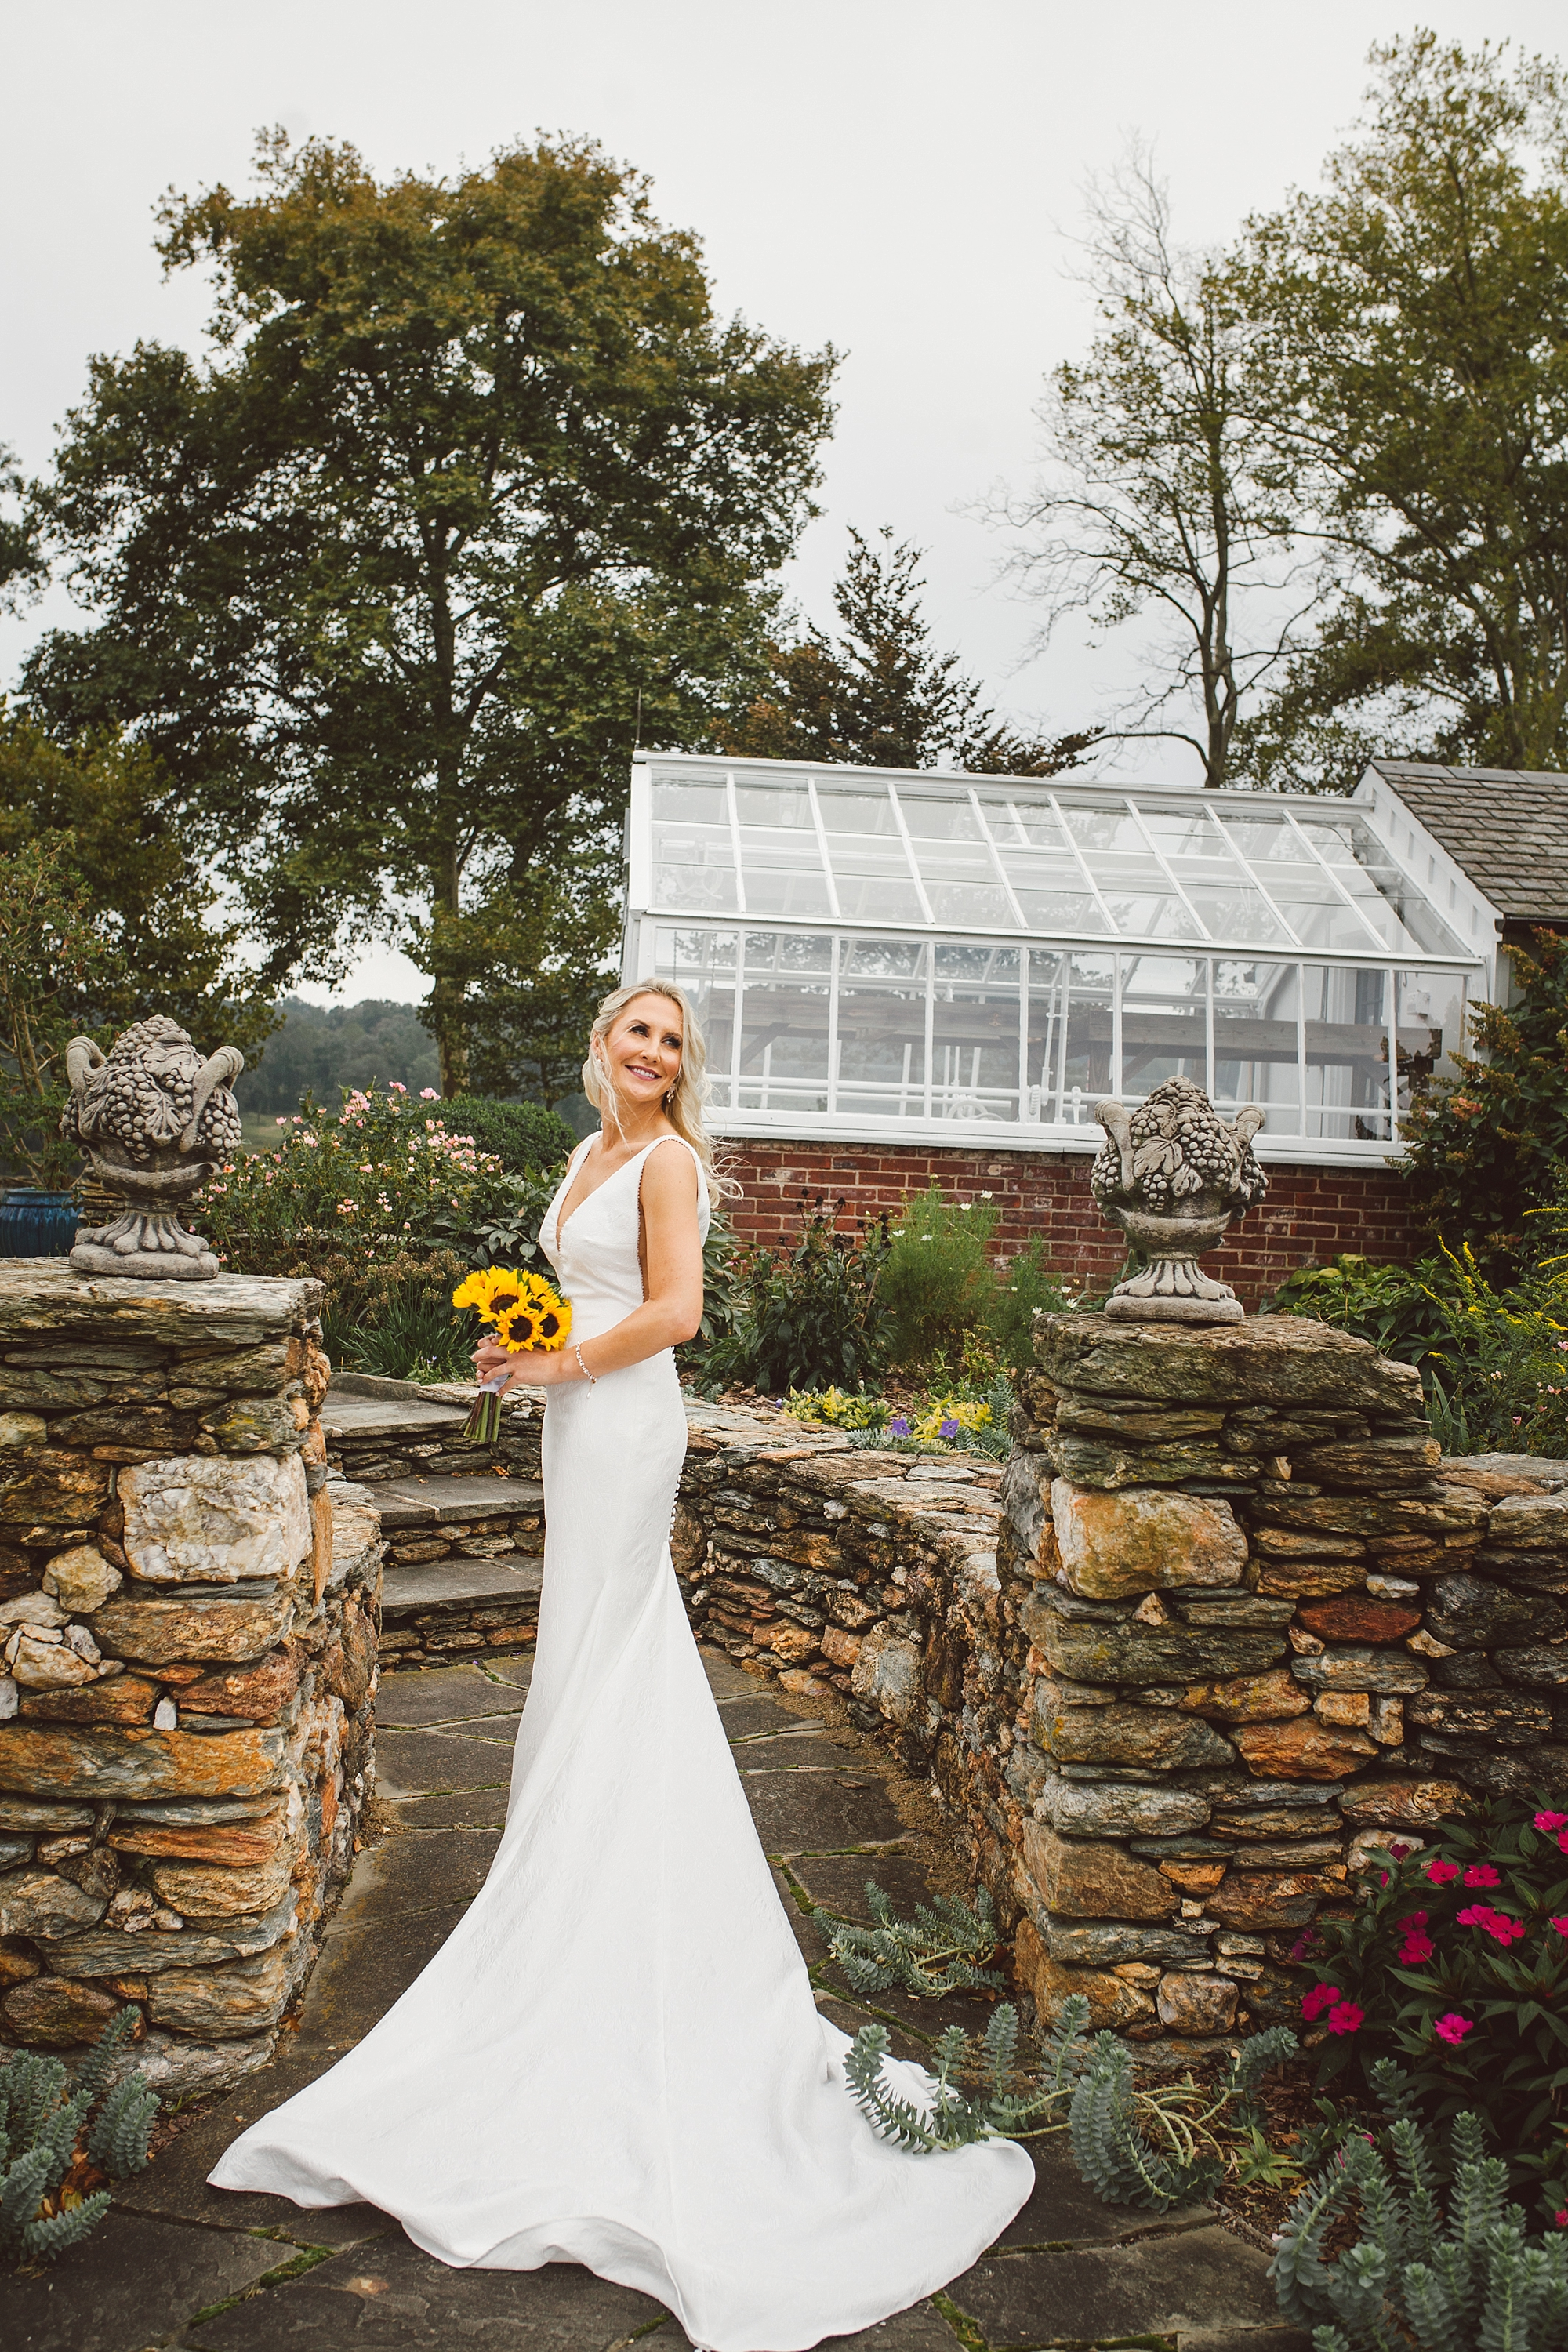 Druemore_Joe_Mac_Creative_Philadelphila_Wedding_Photography_drumore_estate_pequea_Best_lancaster_wedding_venues_0019.jpg